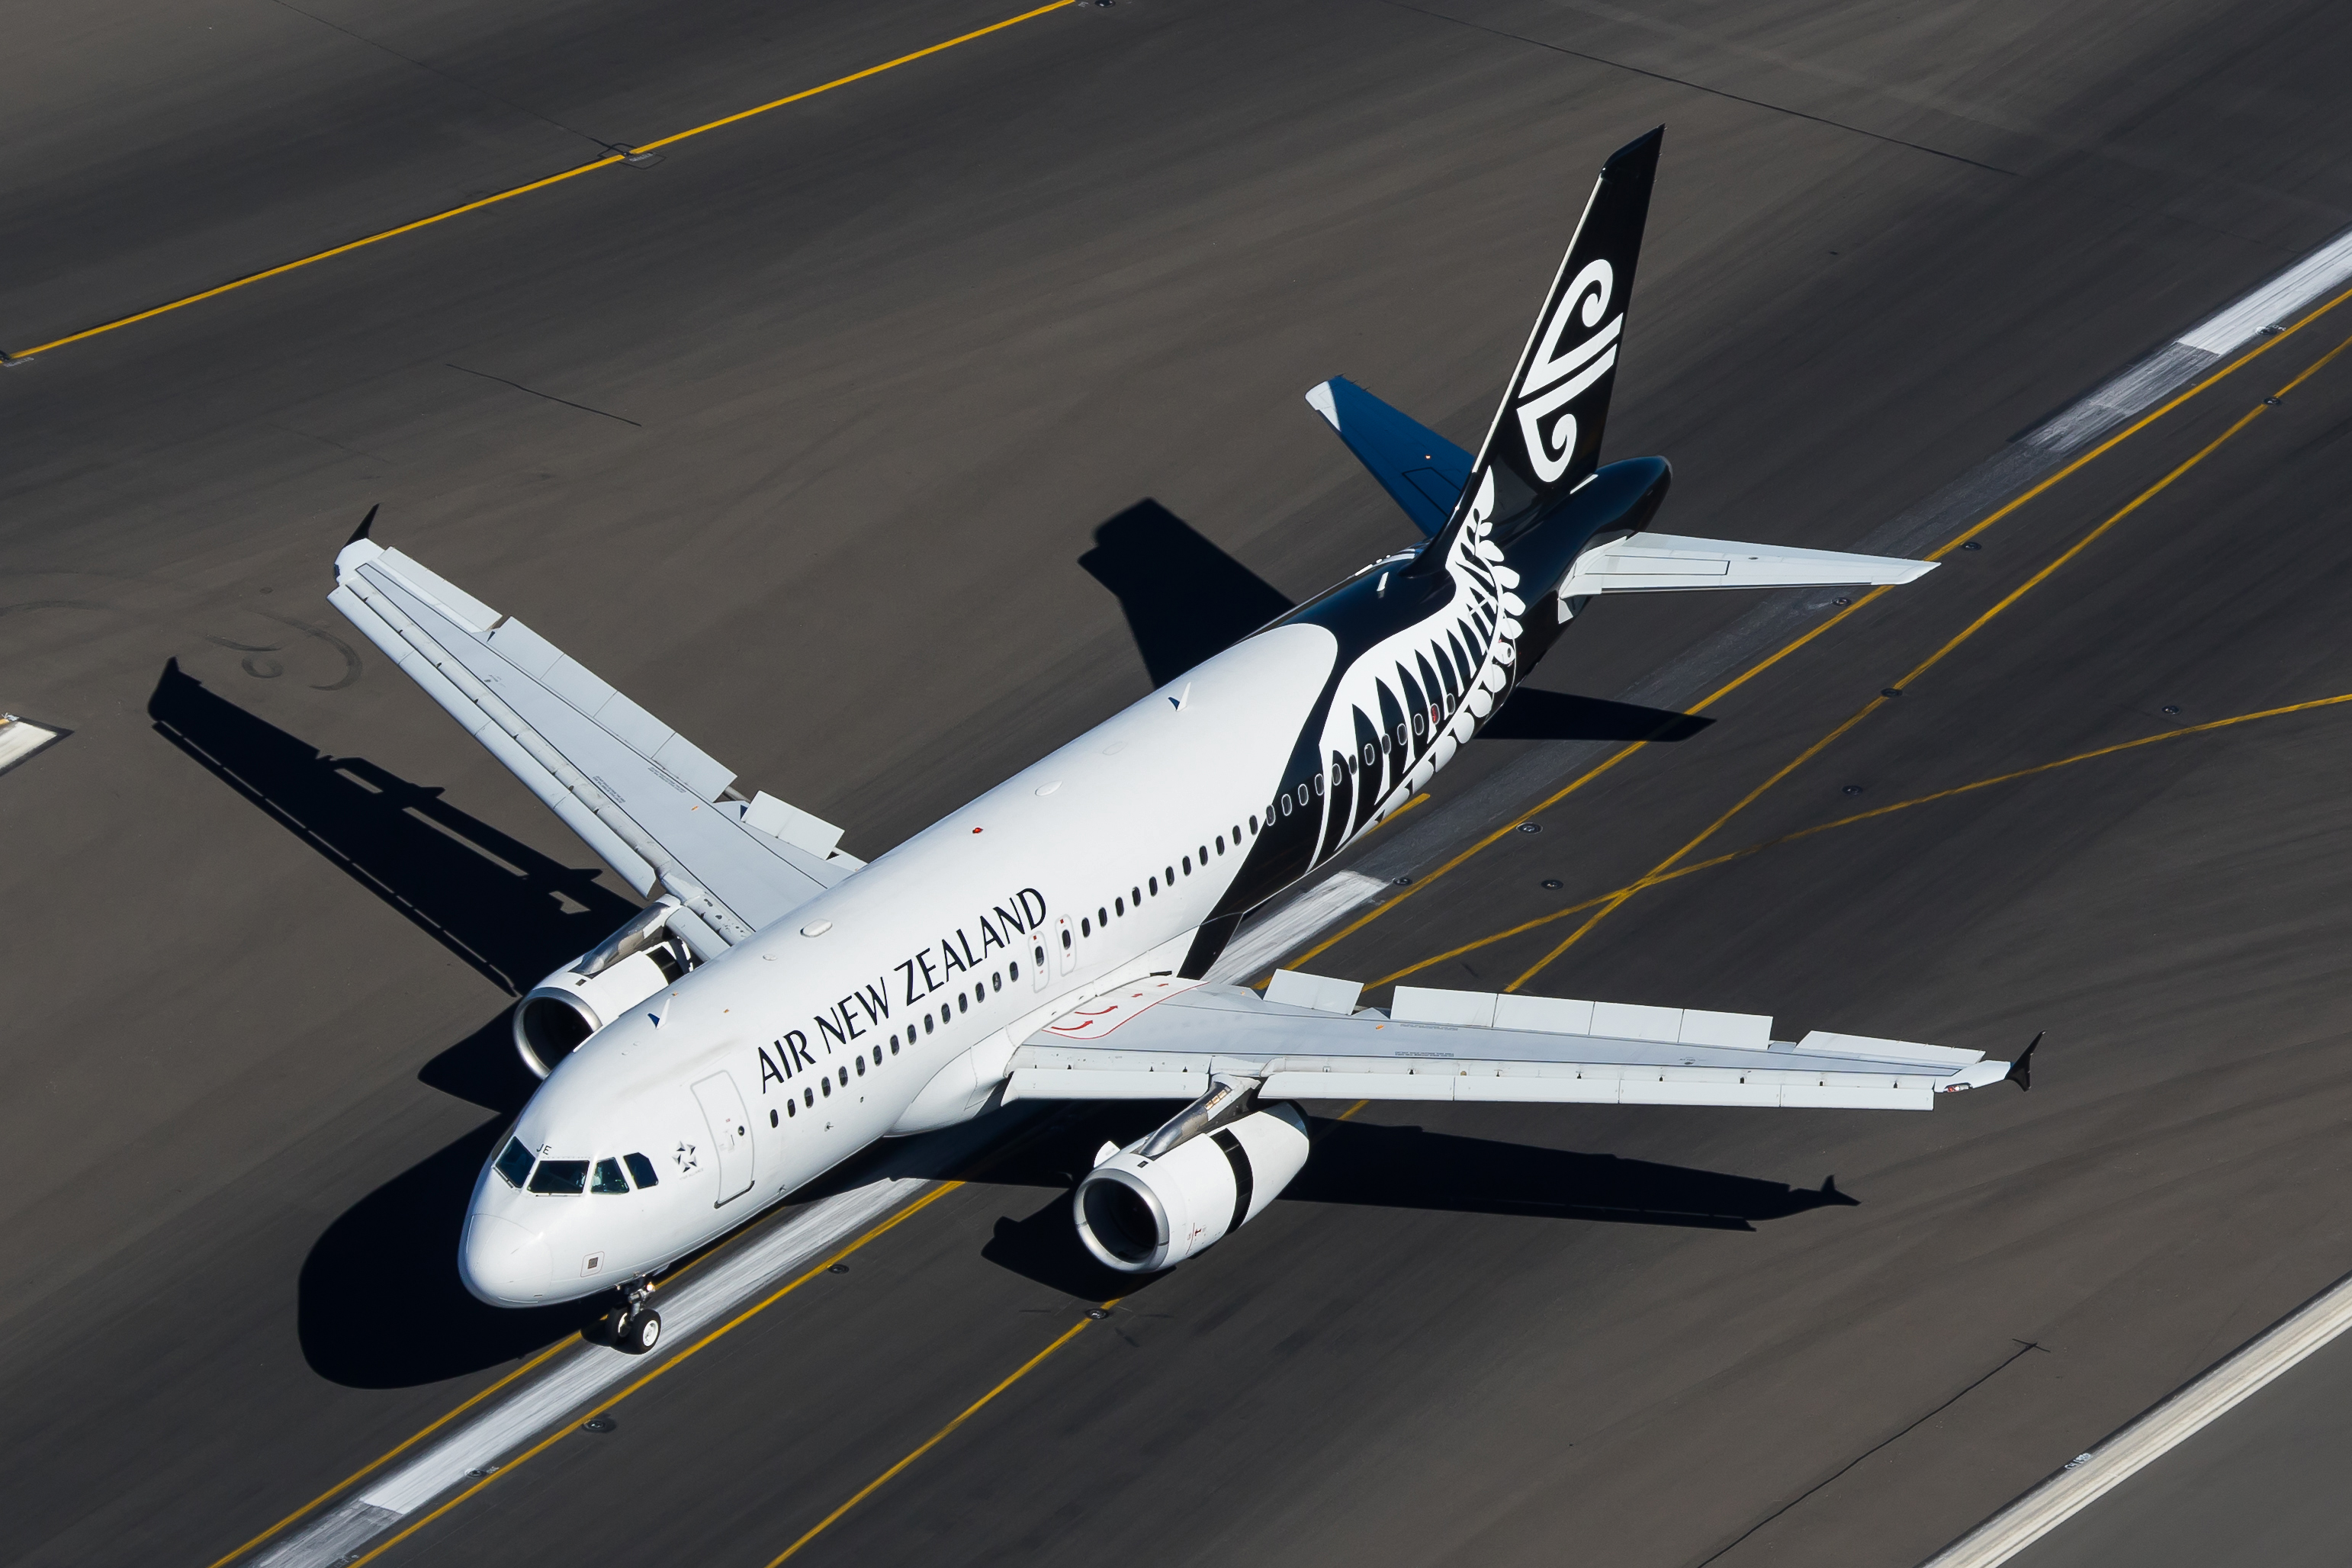 ZK-OJE Air New Zealand A320-200